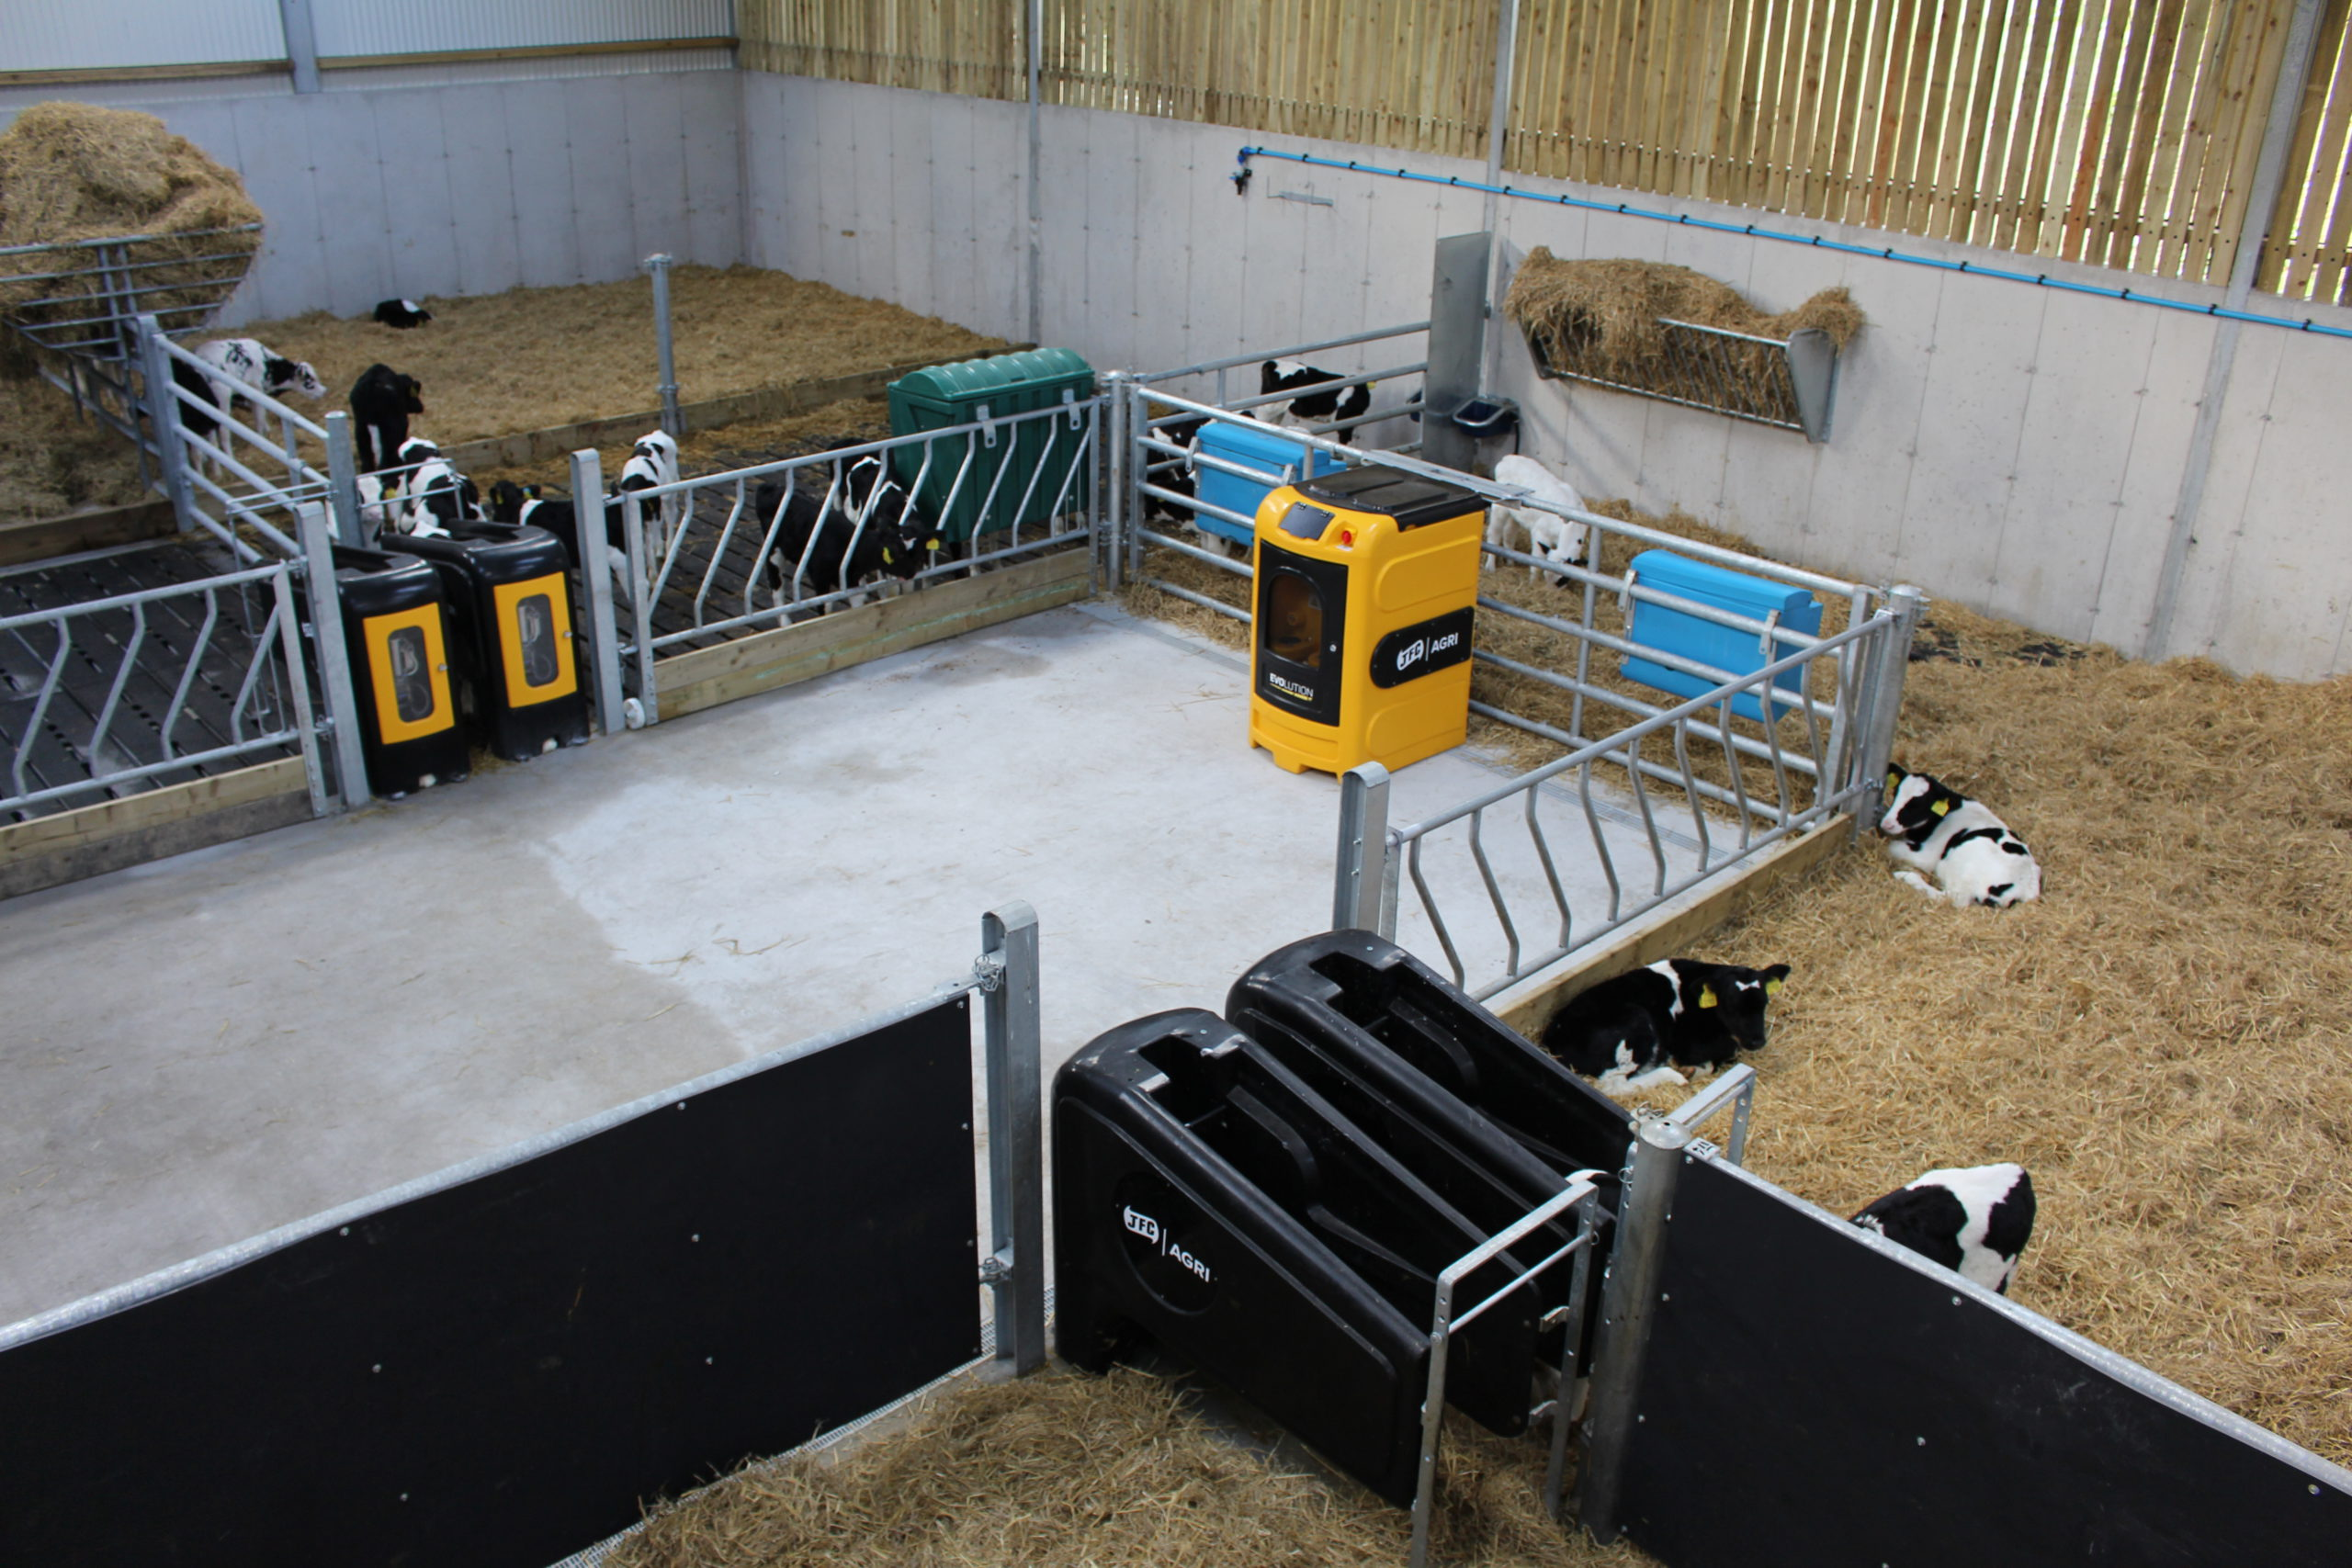 shed, livestock shed, dairy farming,